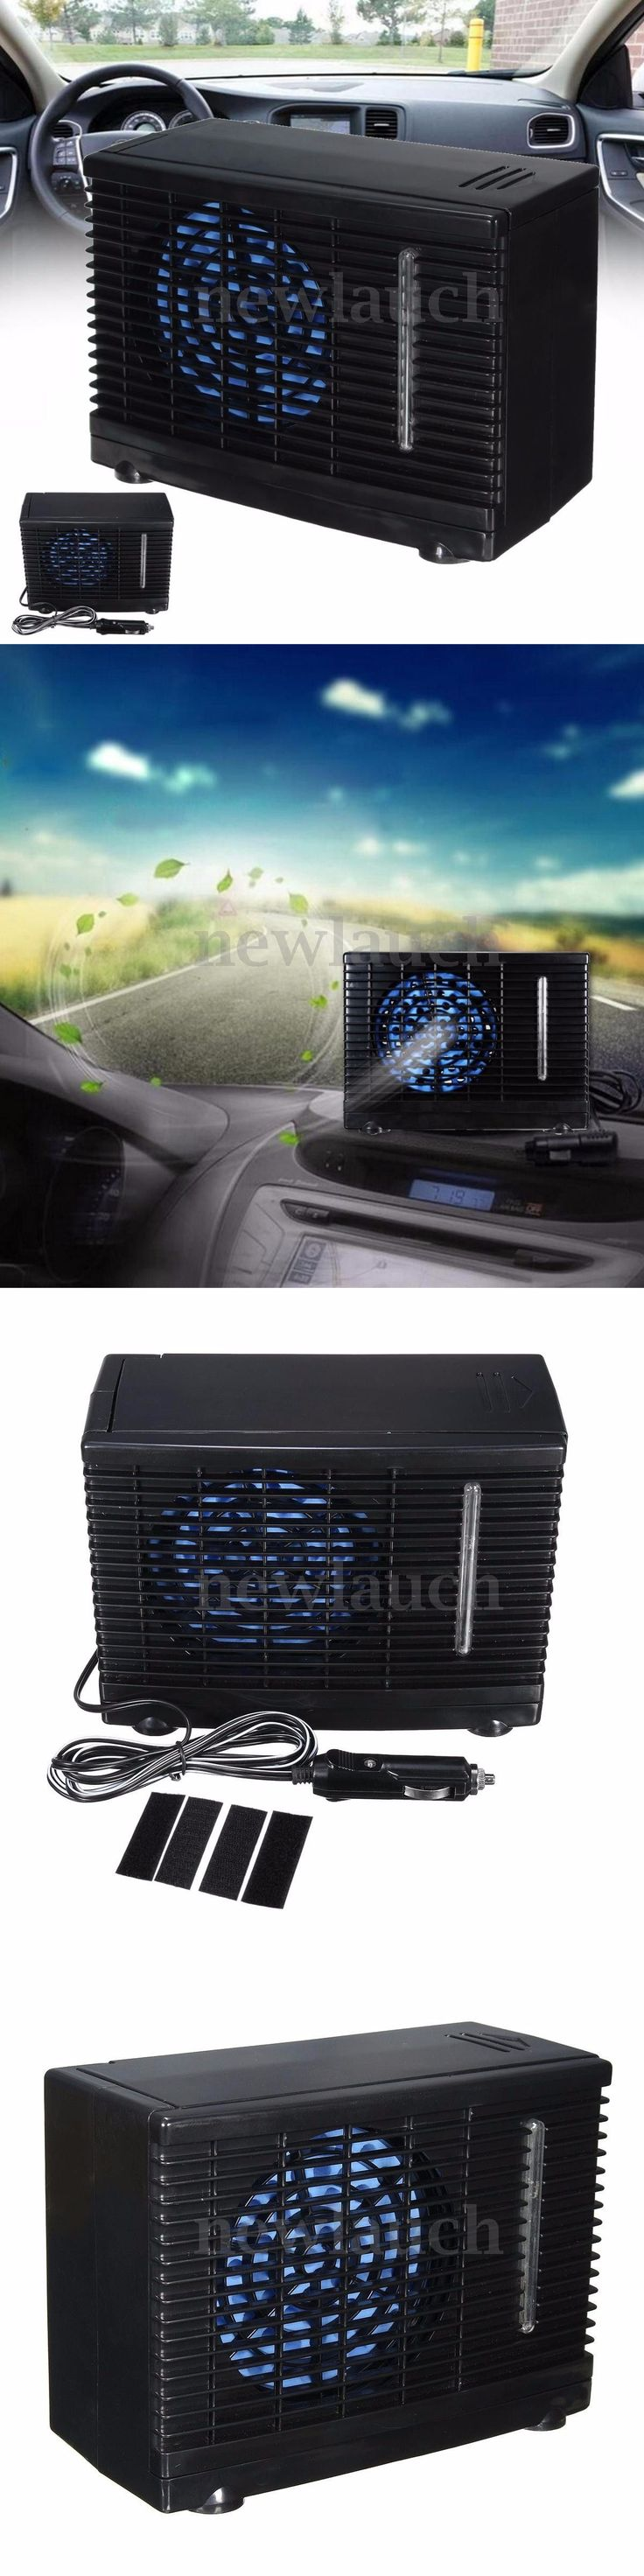 12-Volt Portable Appliances: 12V Portable Home Car Cooler Cooling Fan Water Ice Evaporative Air Conditioner BUY IT NOW ONLY: $49.99